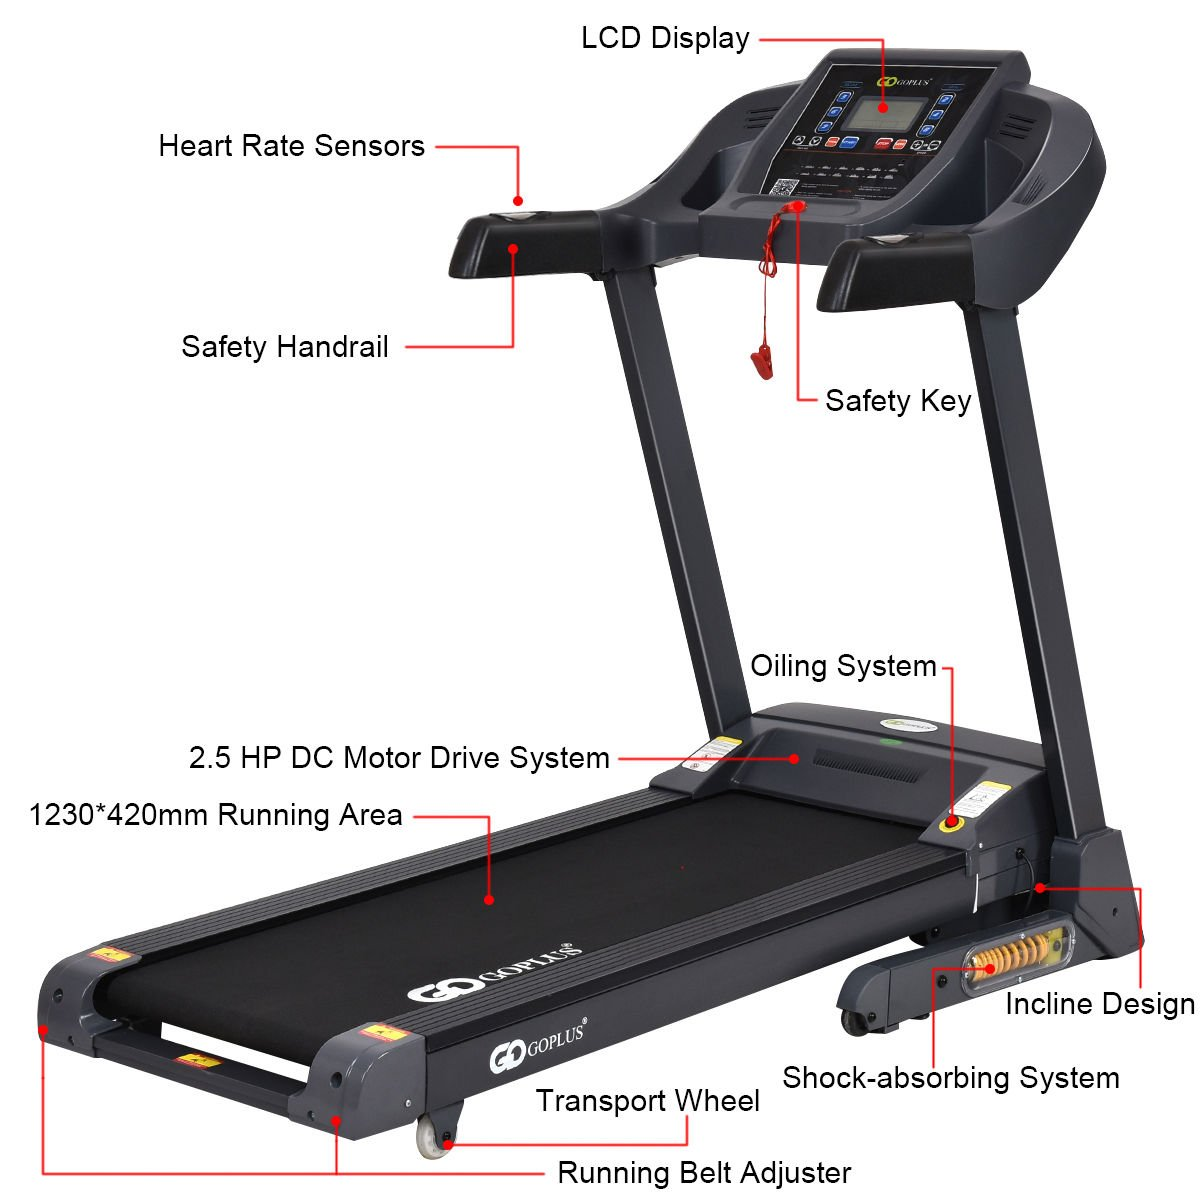 Goplus 2.5HP Folding Treadmill Electric Support Motorized Power Running Fitness Jogging Incline Machine W/APP Control & Shock-Absorption System (New Model) by Goplus (Image #2)